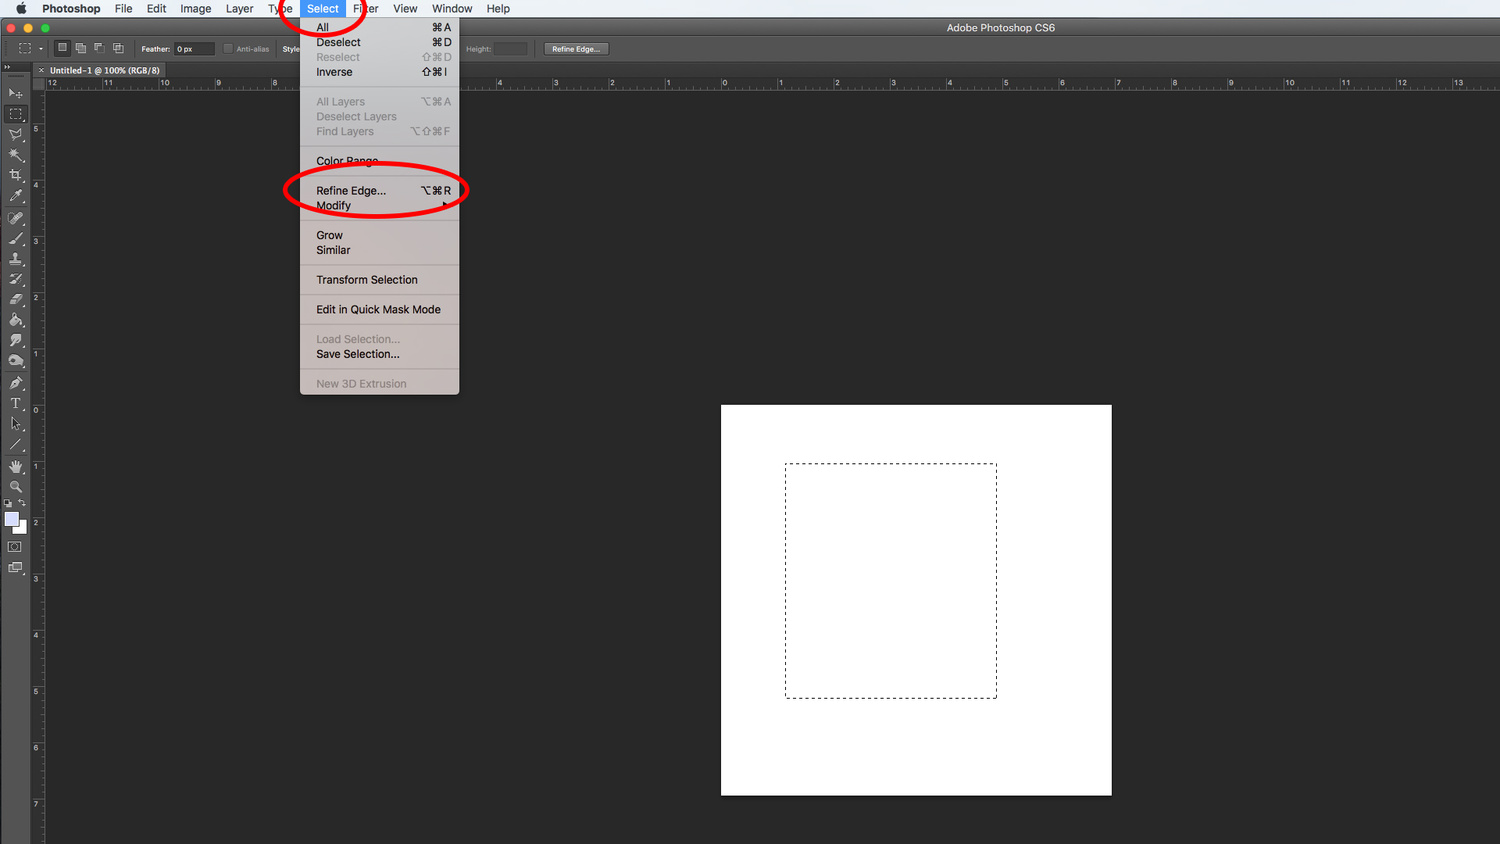 A screenshot displaying the Refine Edge tool in Adobe Photoshop CS6.